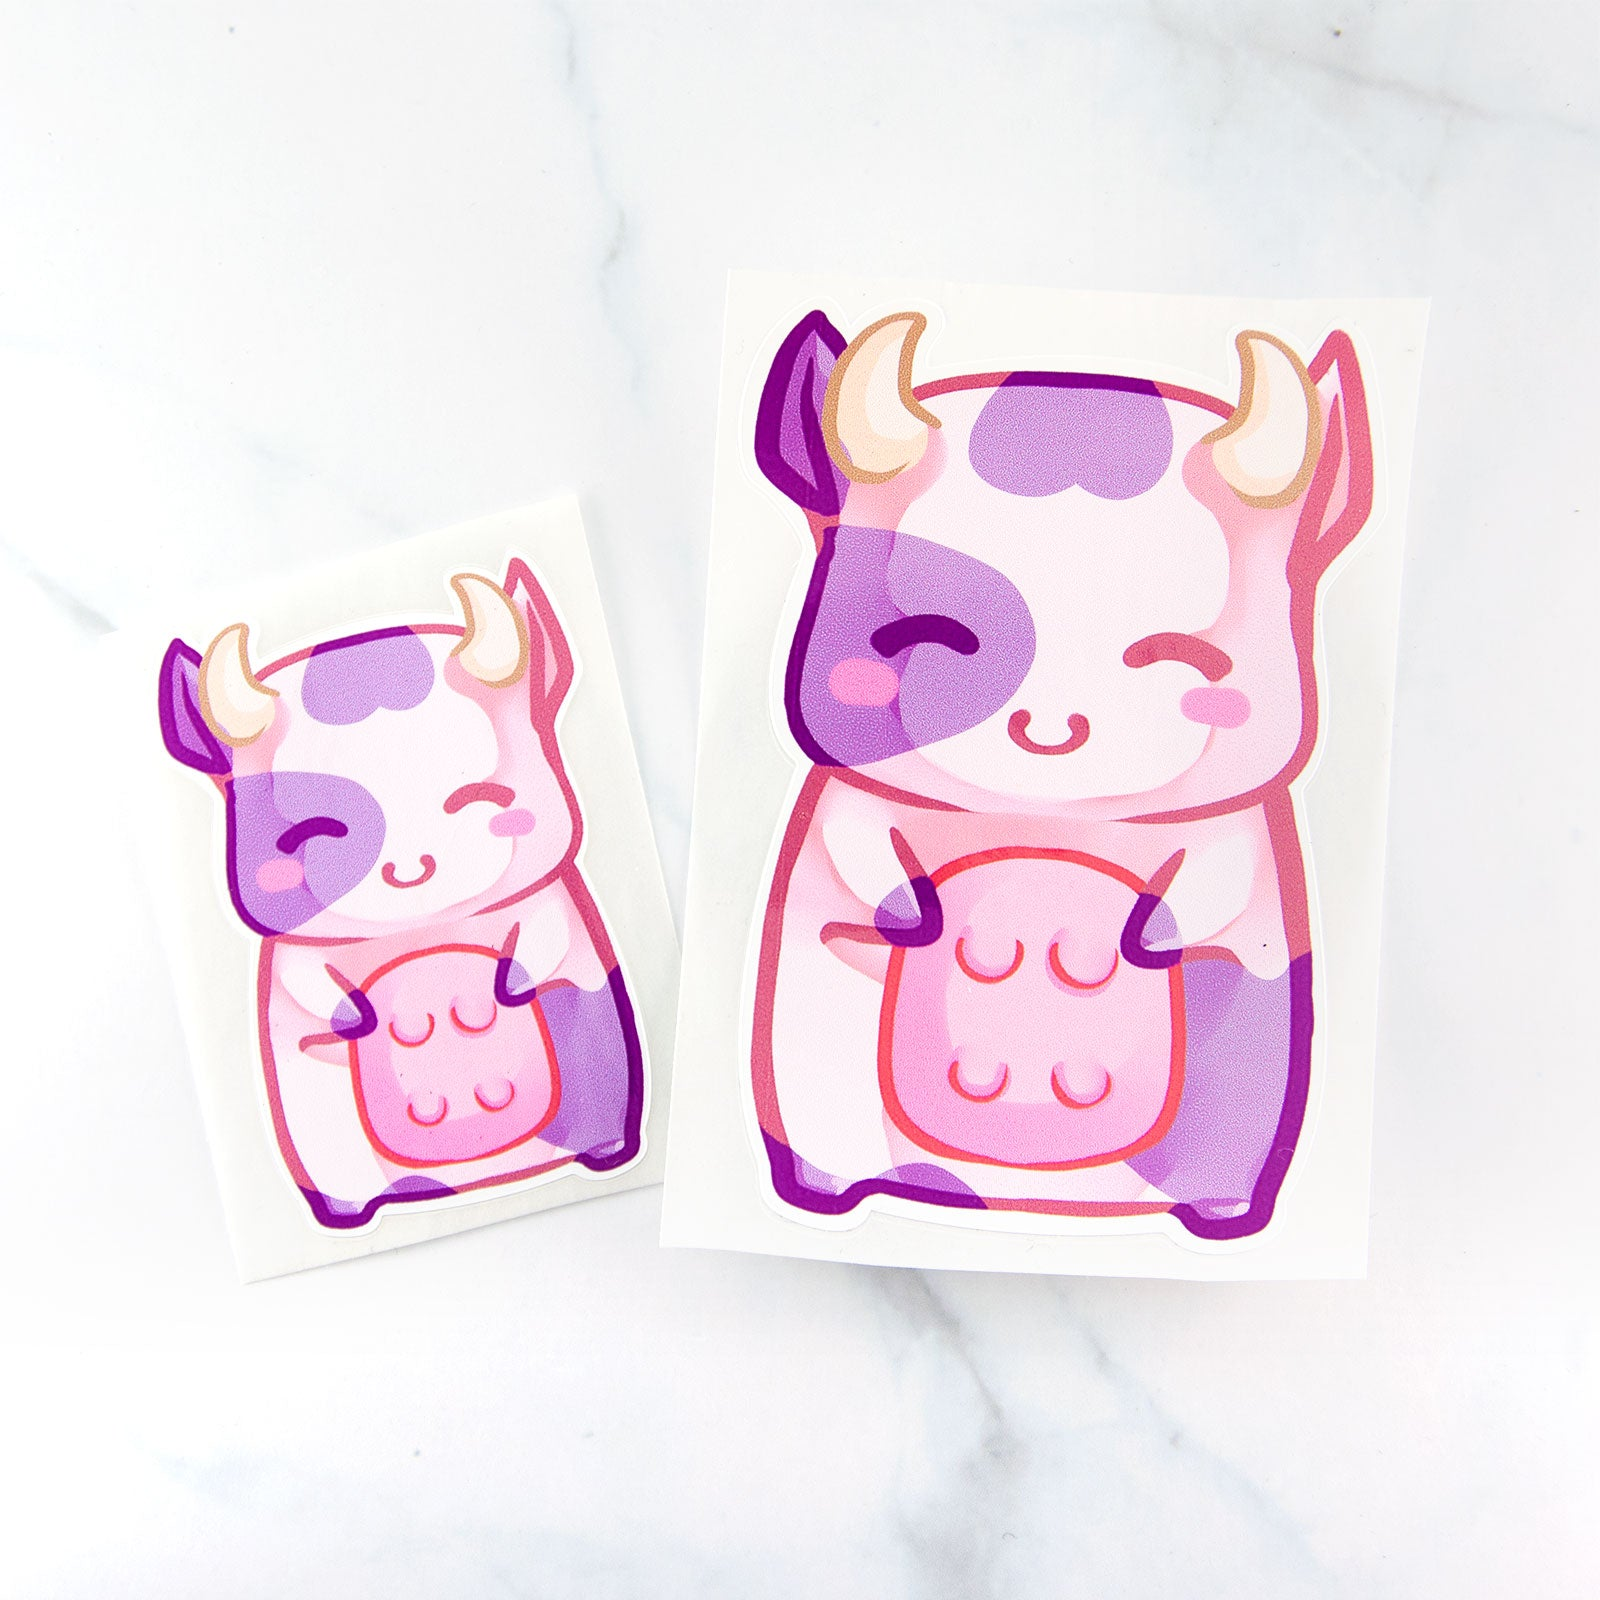 Kawaii baby pink anime cow sticker - MadModesty